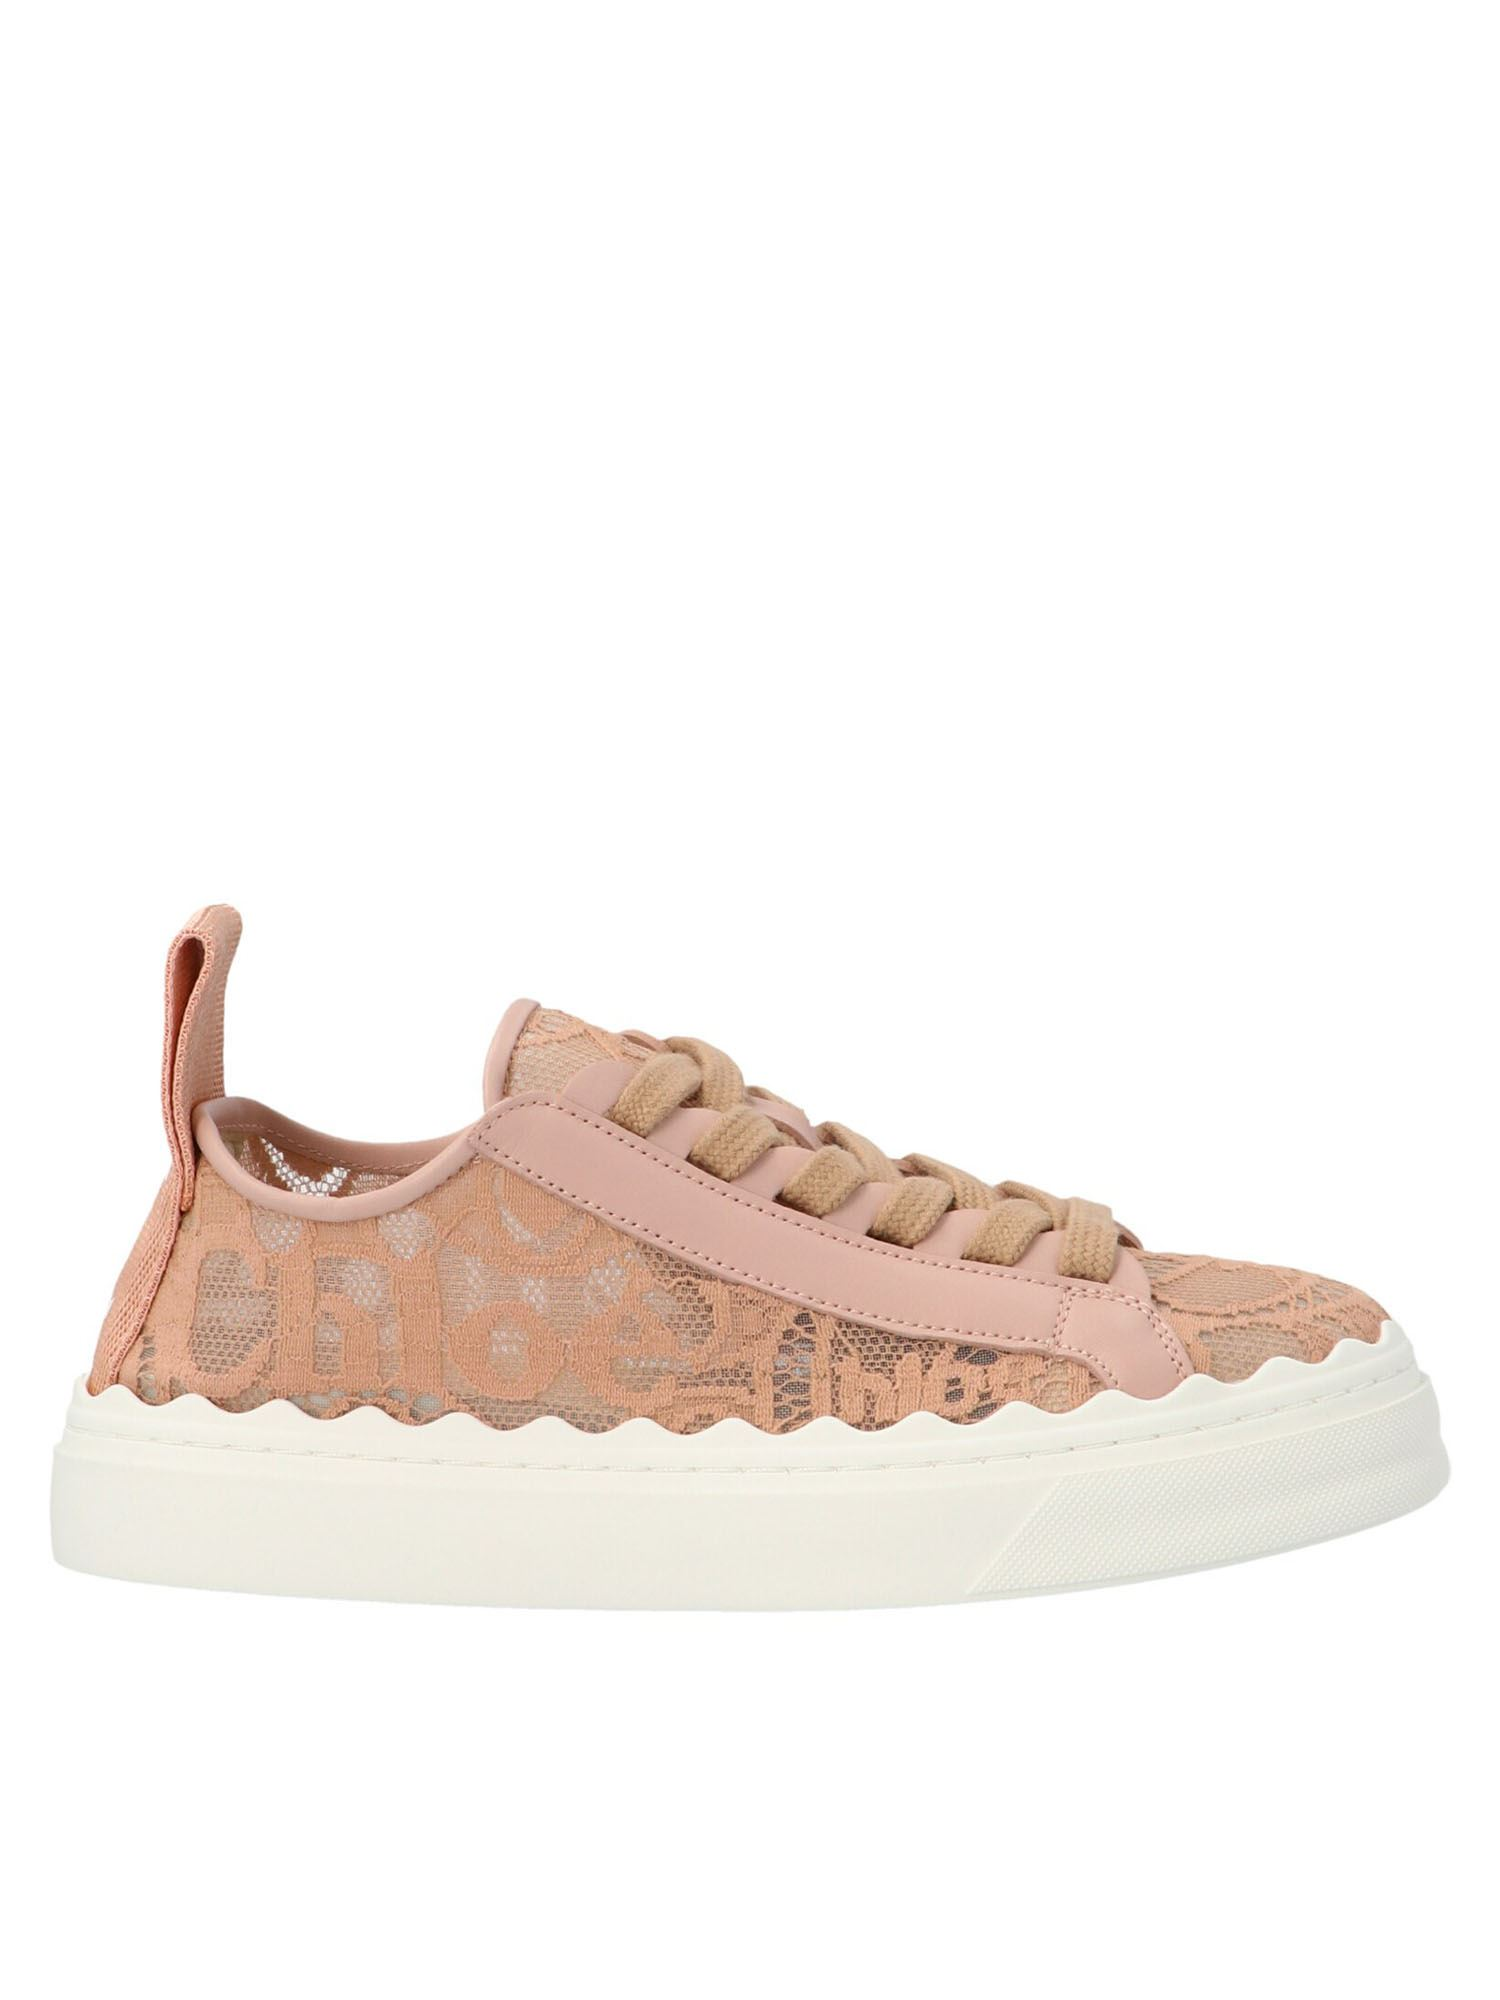 Chloé LAUREN SNEAKERS IN PINK TEA